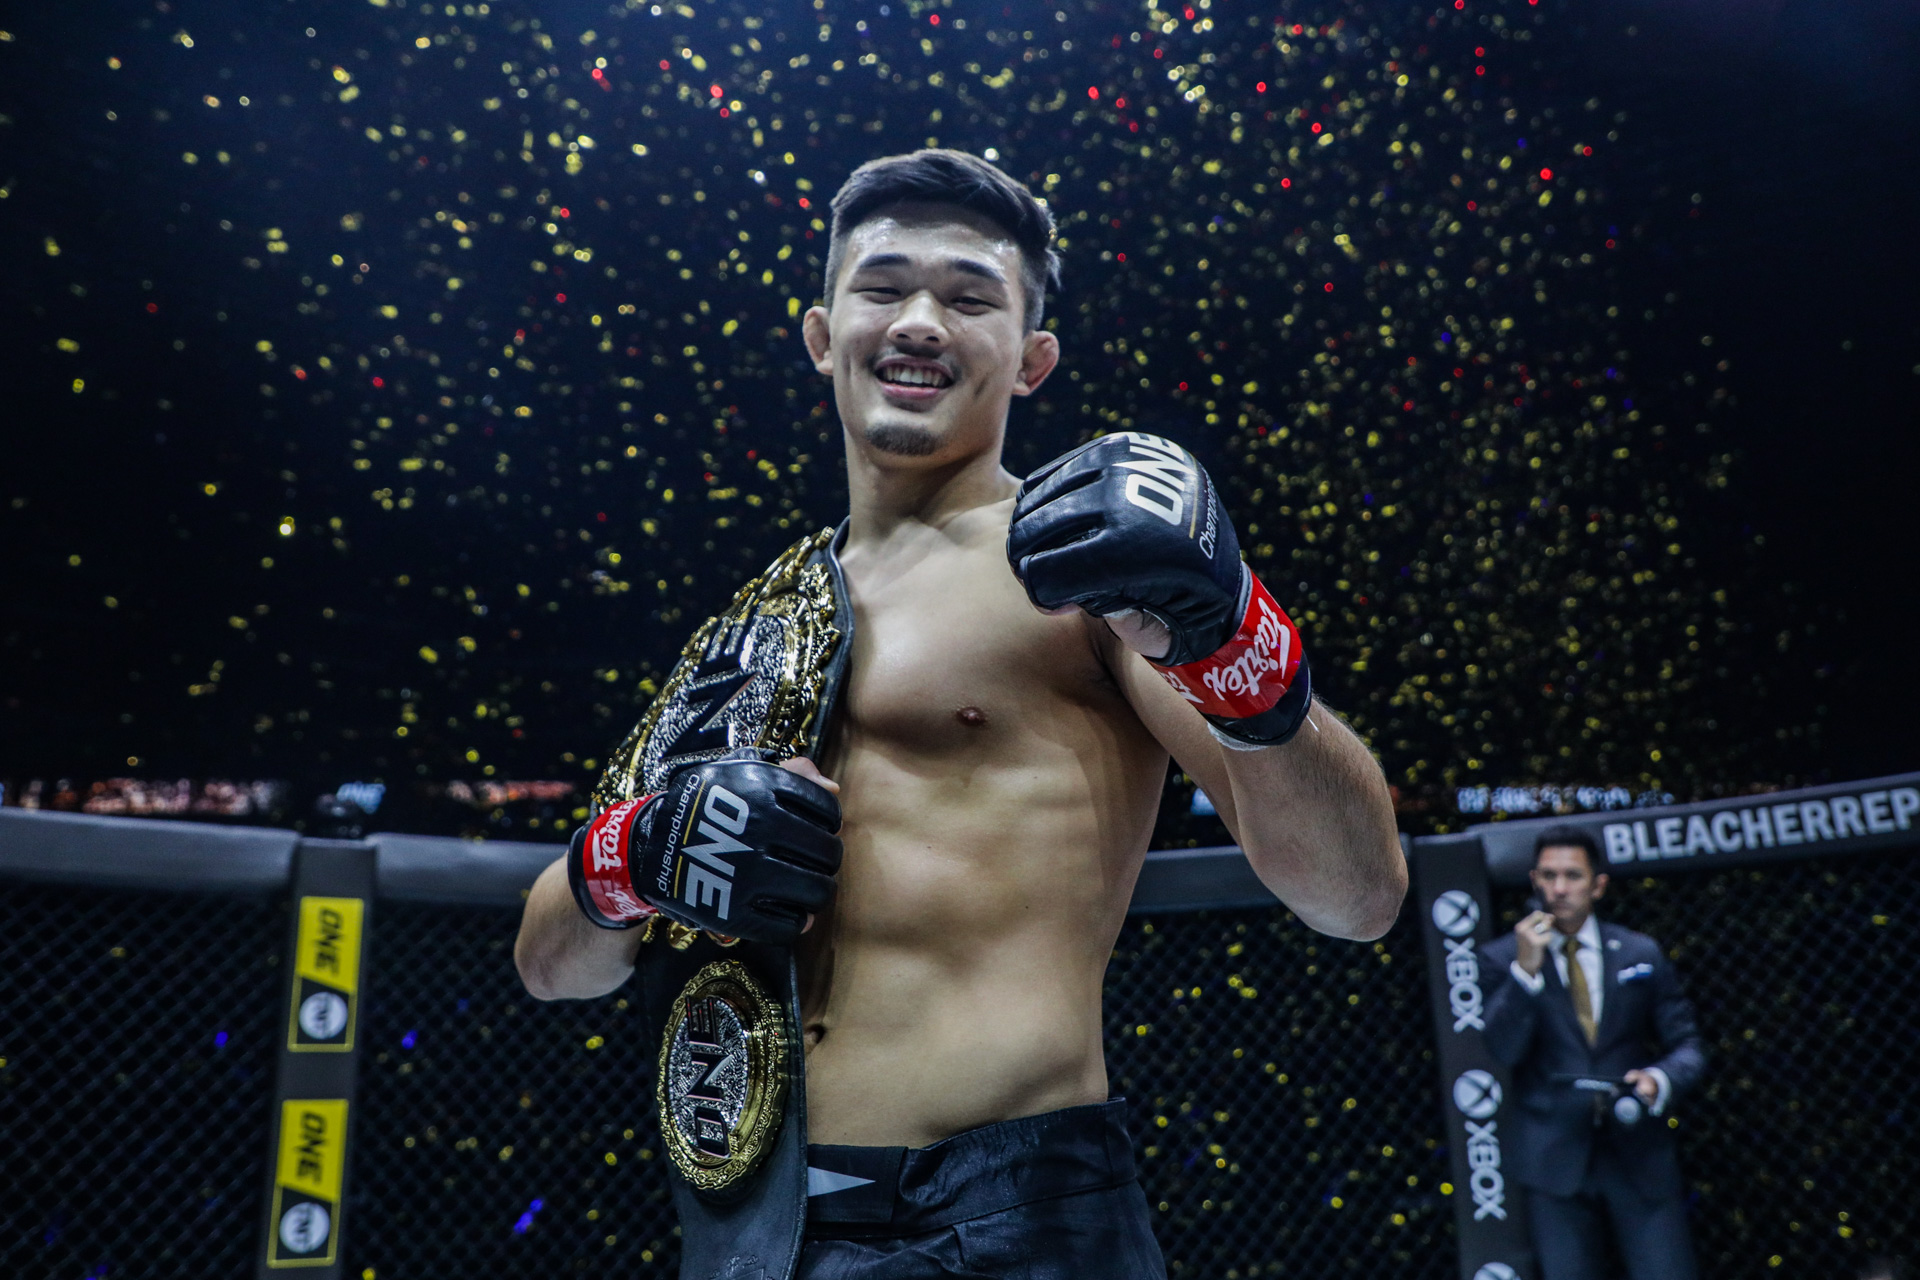 MMA fighter Christian Lee with the ONE Championship belt